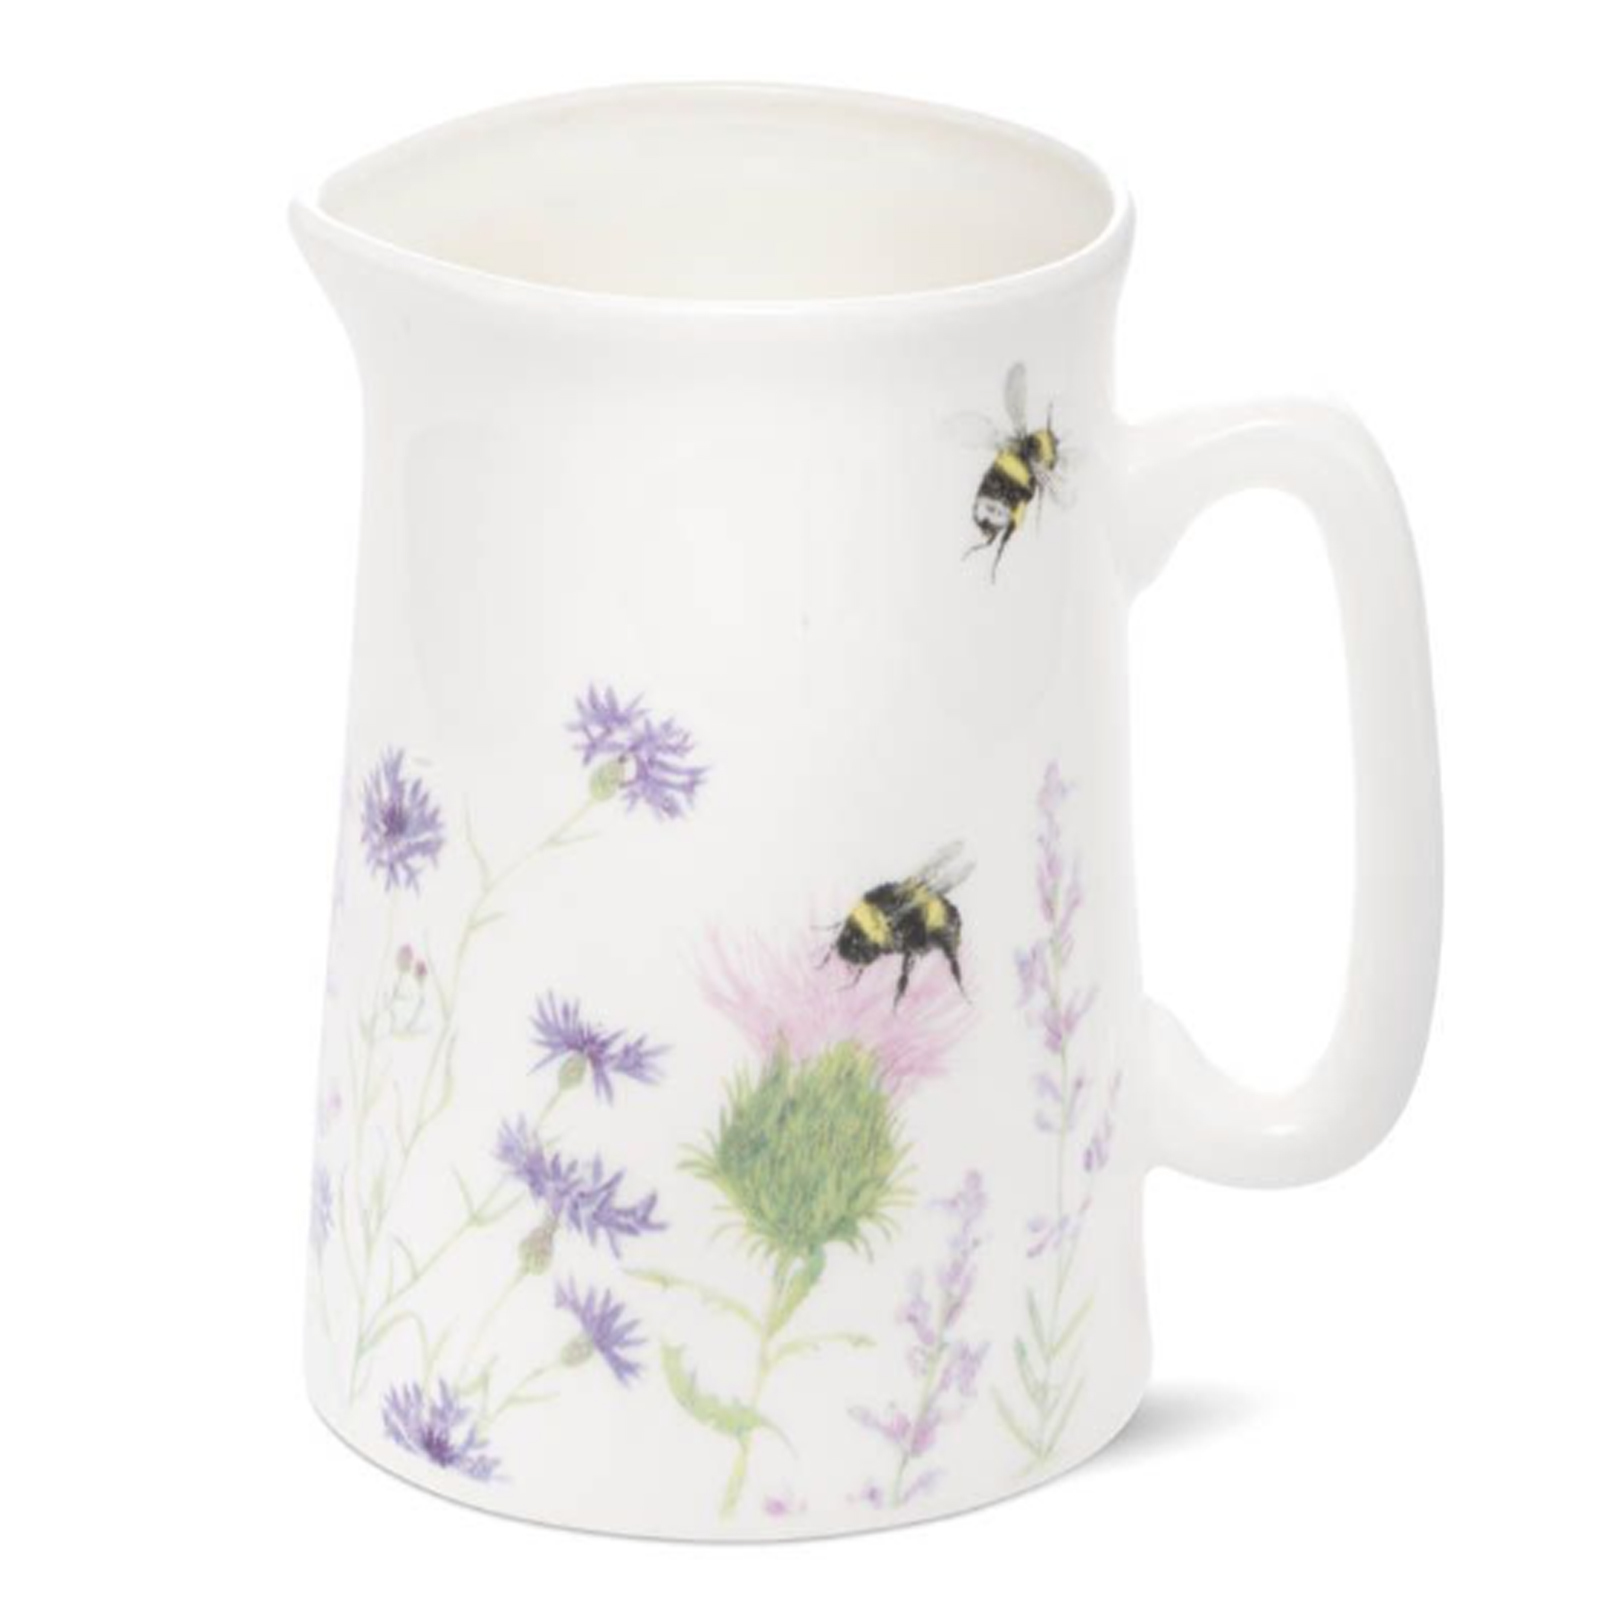 Bumble Bee and Flower Bone China Jug - Medium by Mosney Mill